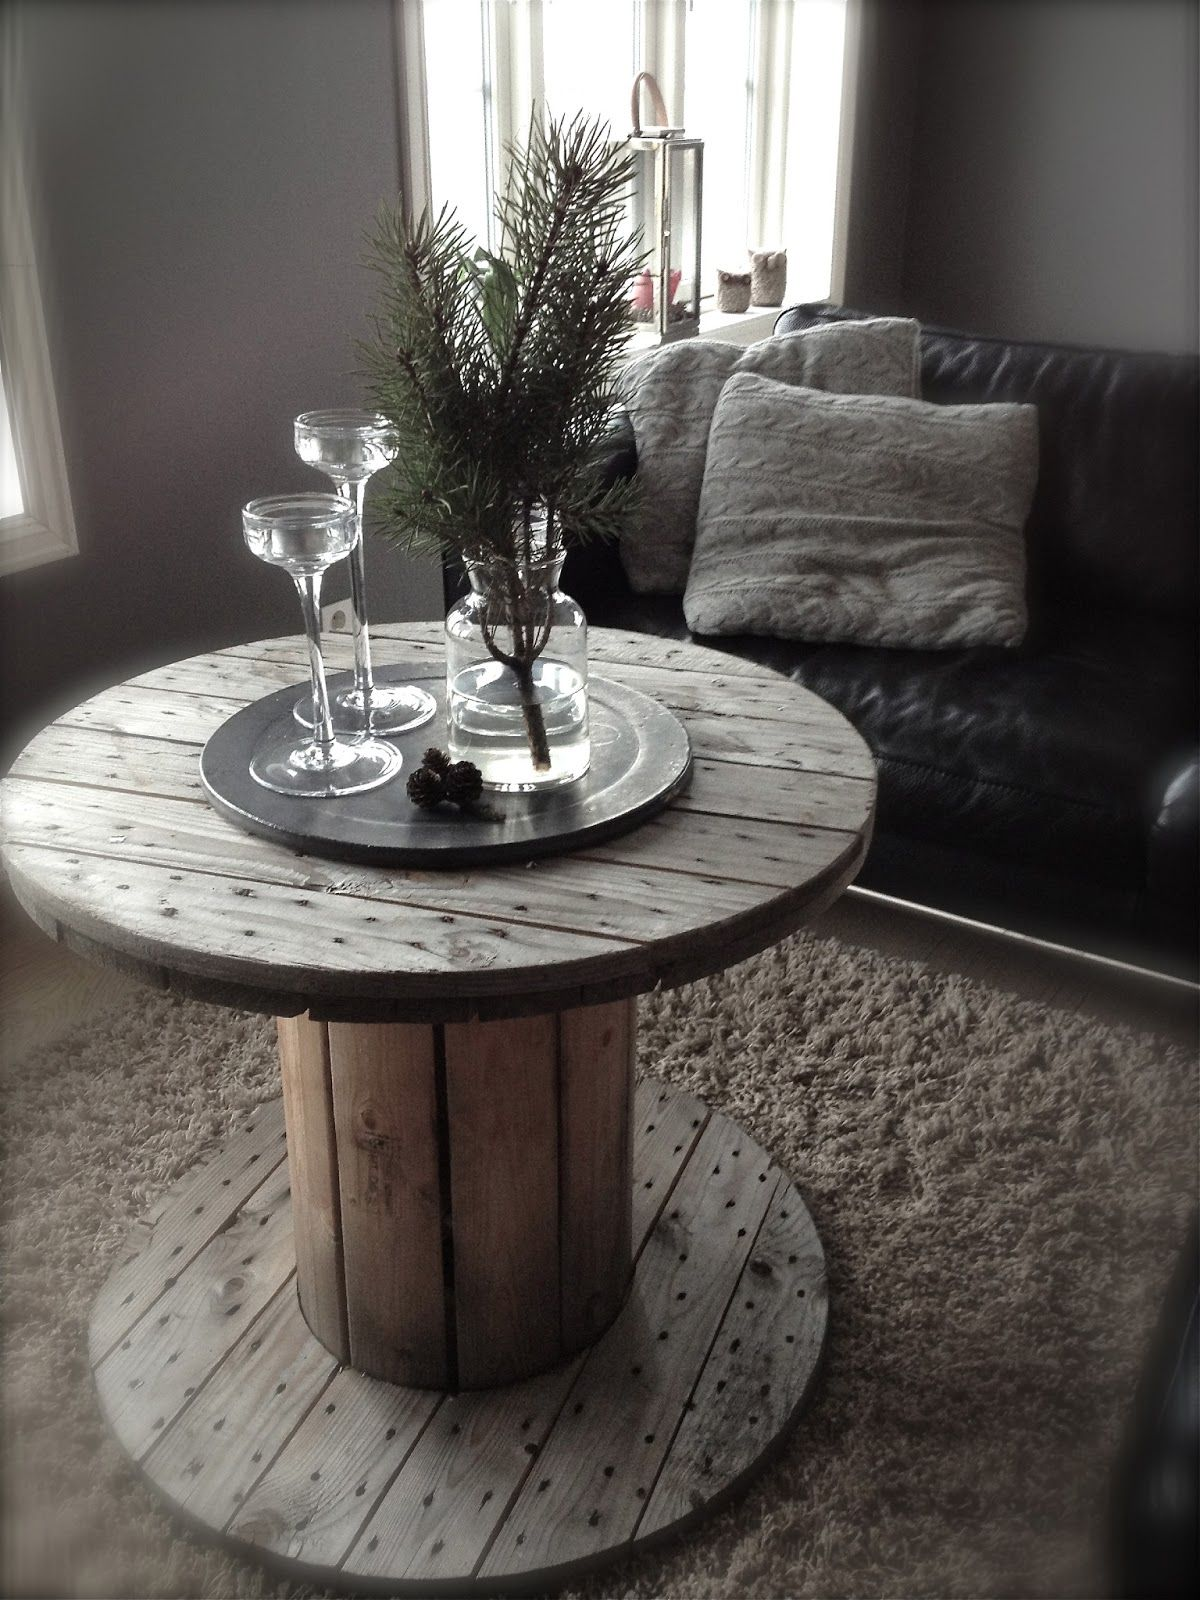 Deco Pour Table Basse Cablespool Table Left In The Weathered Gray Look Love It